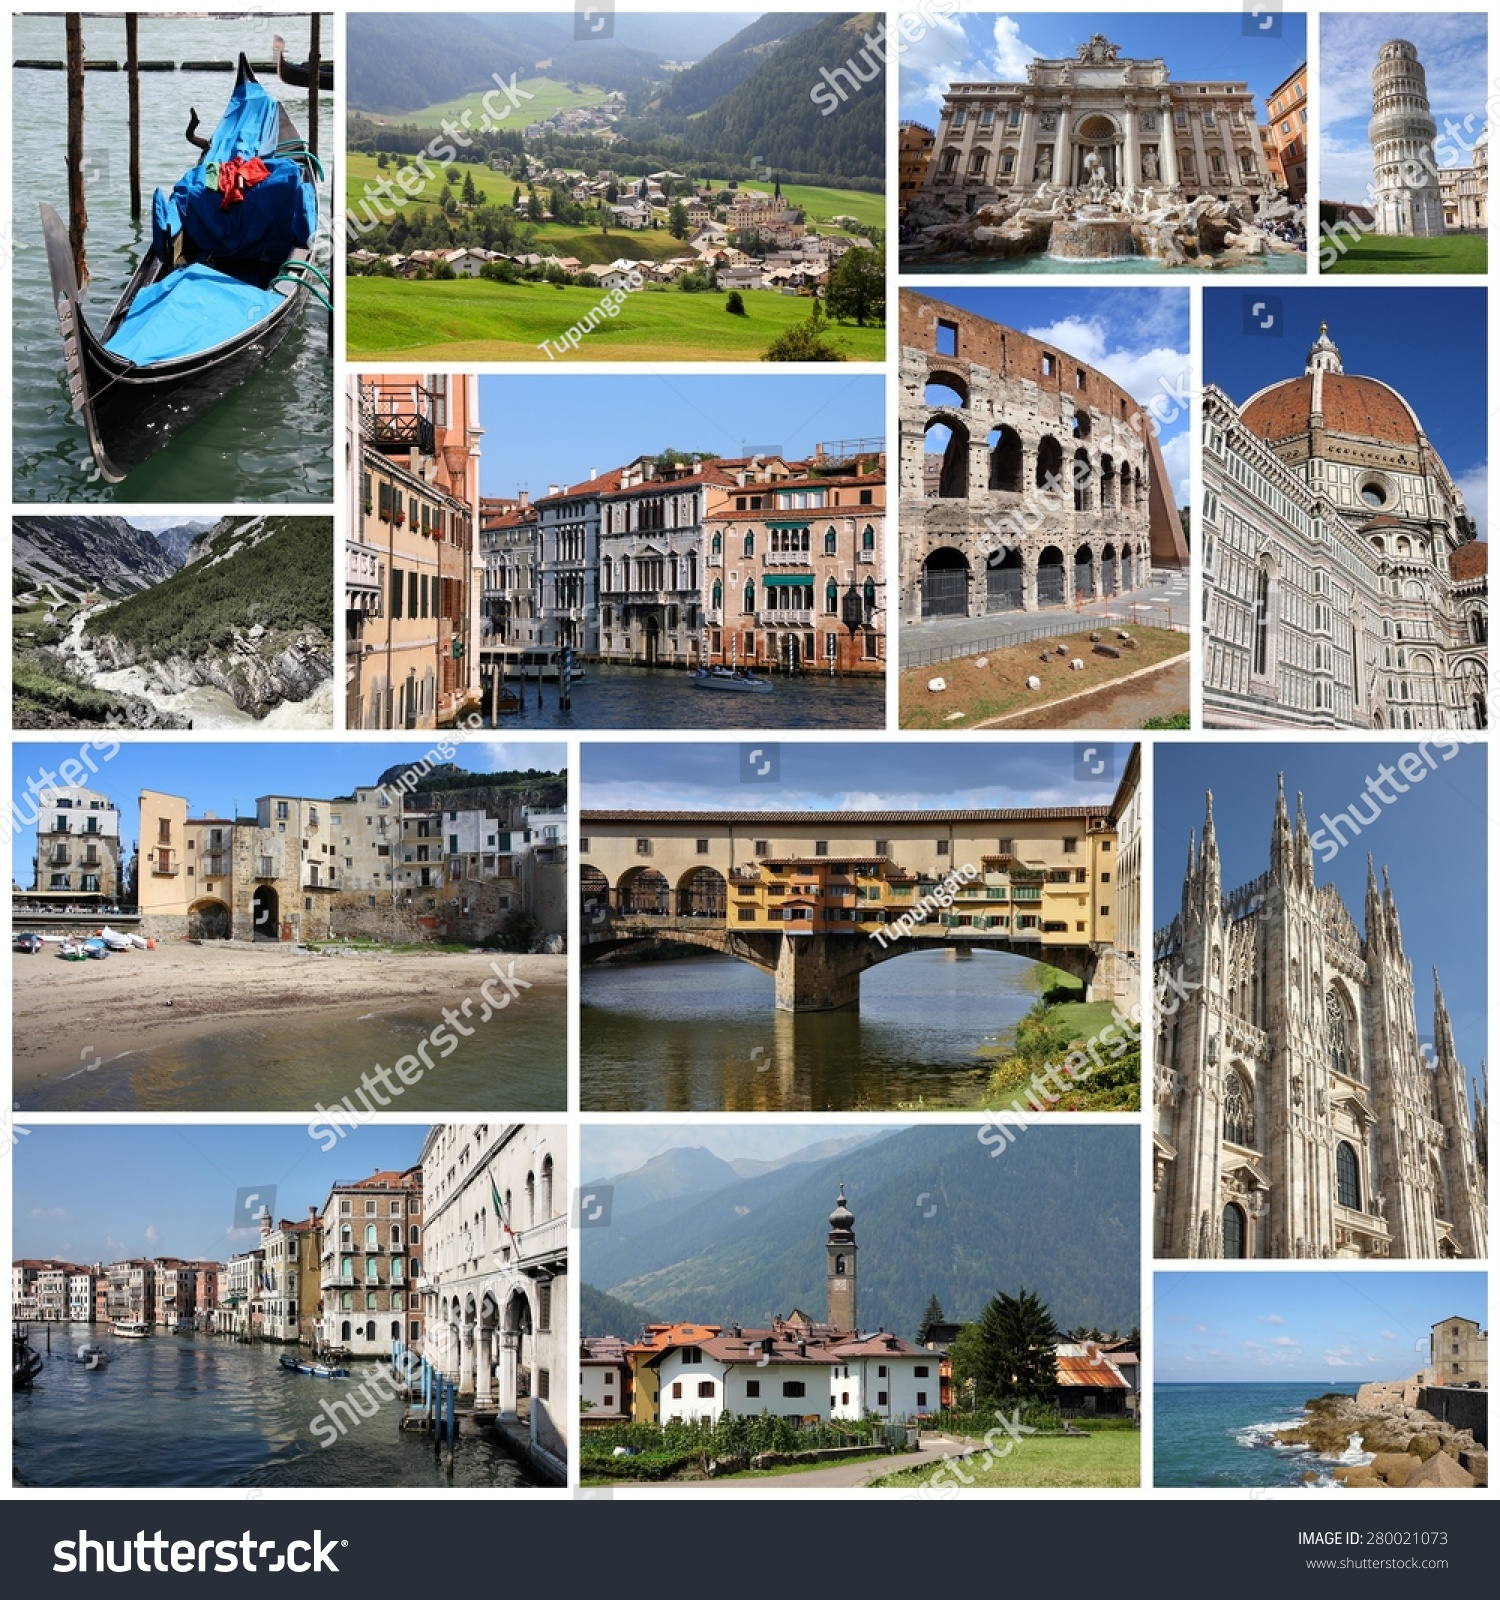 Italy Tourism Attractions Travel Collage Stock Safe to